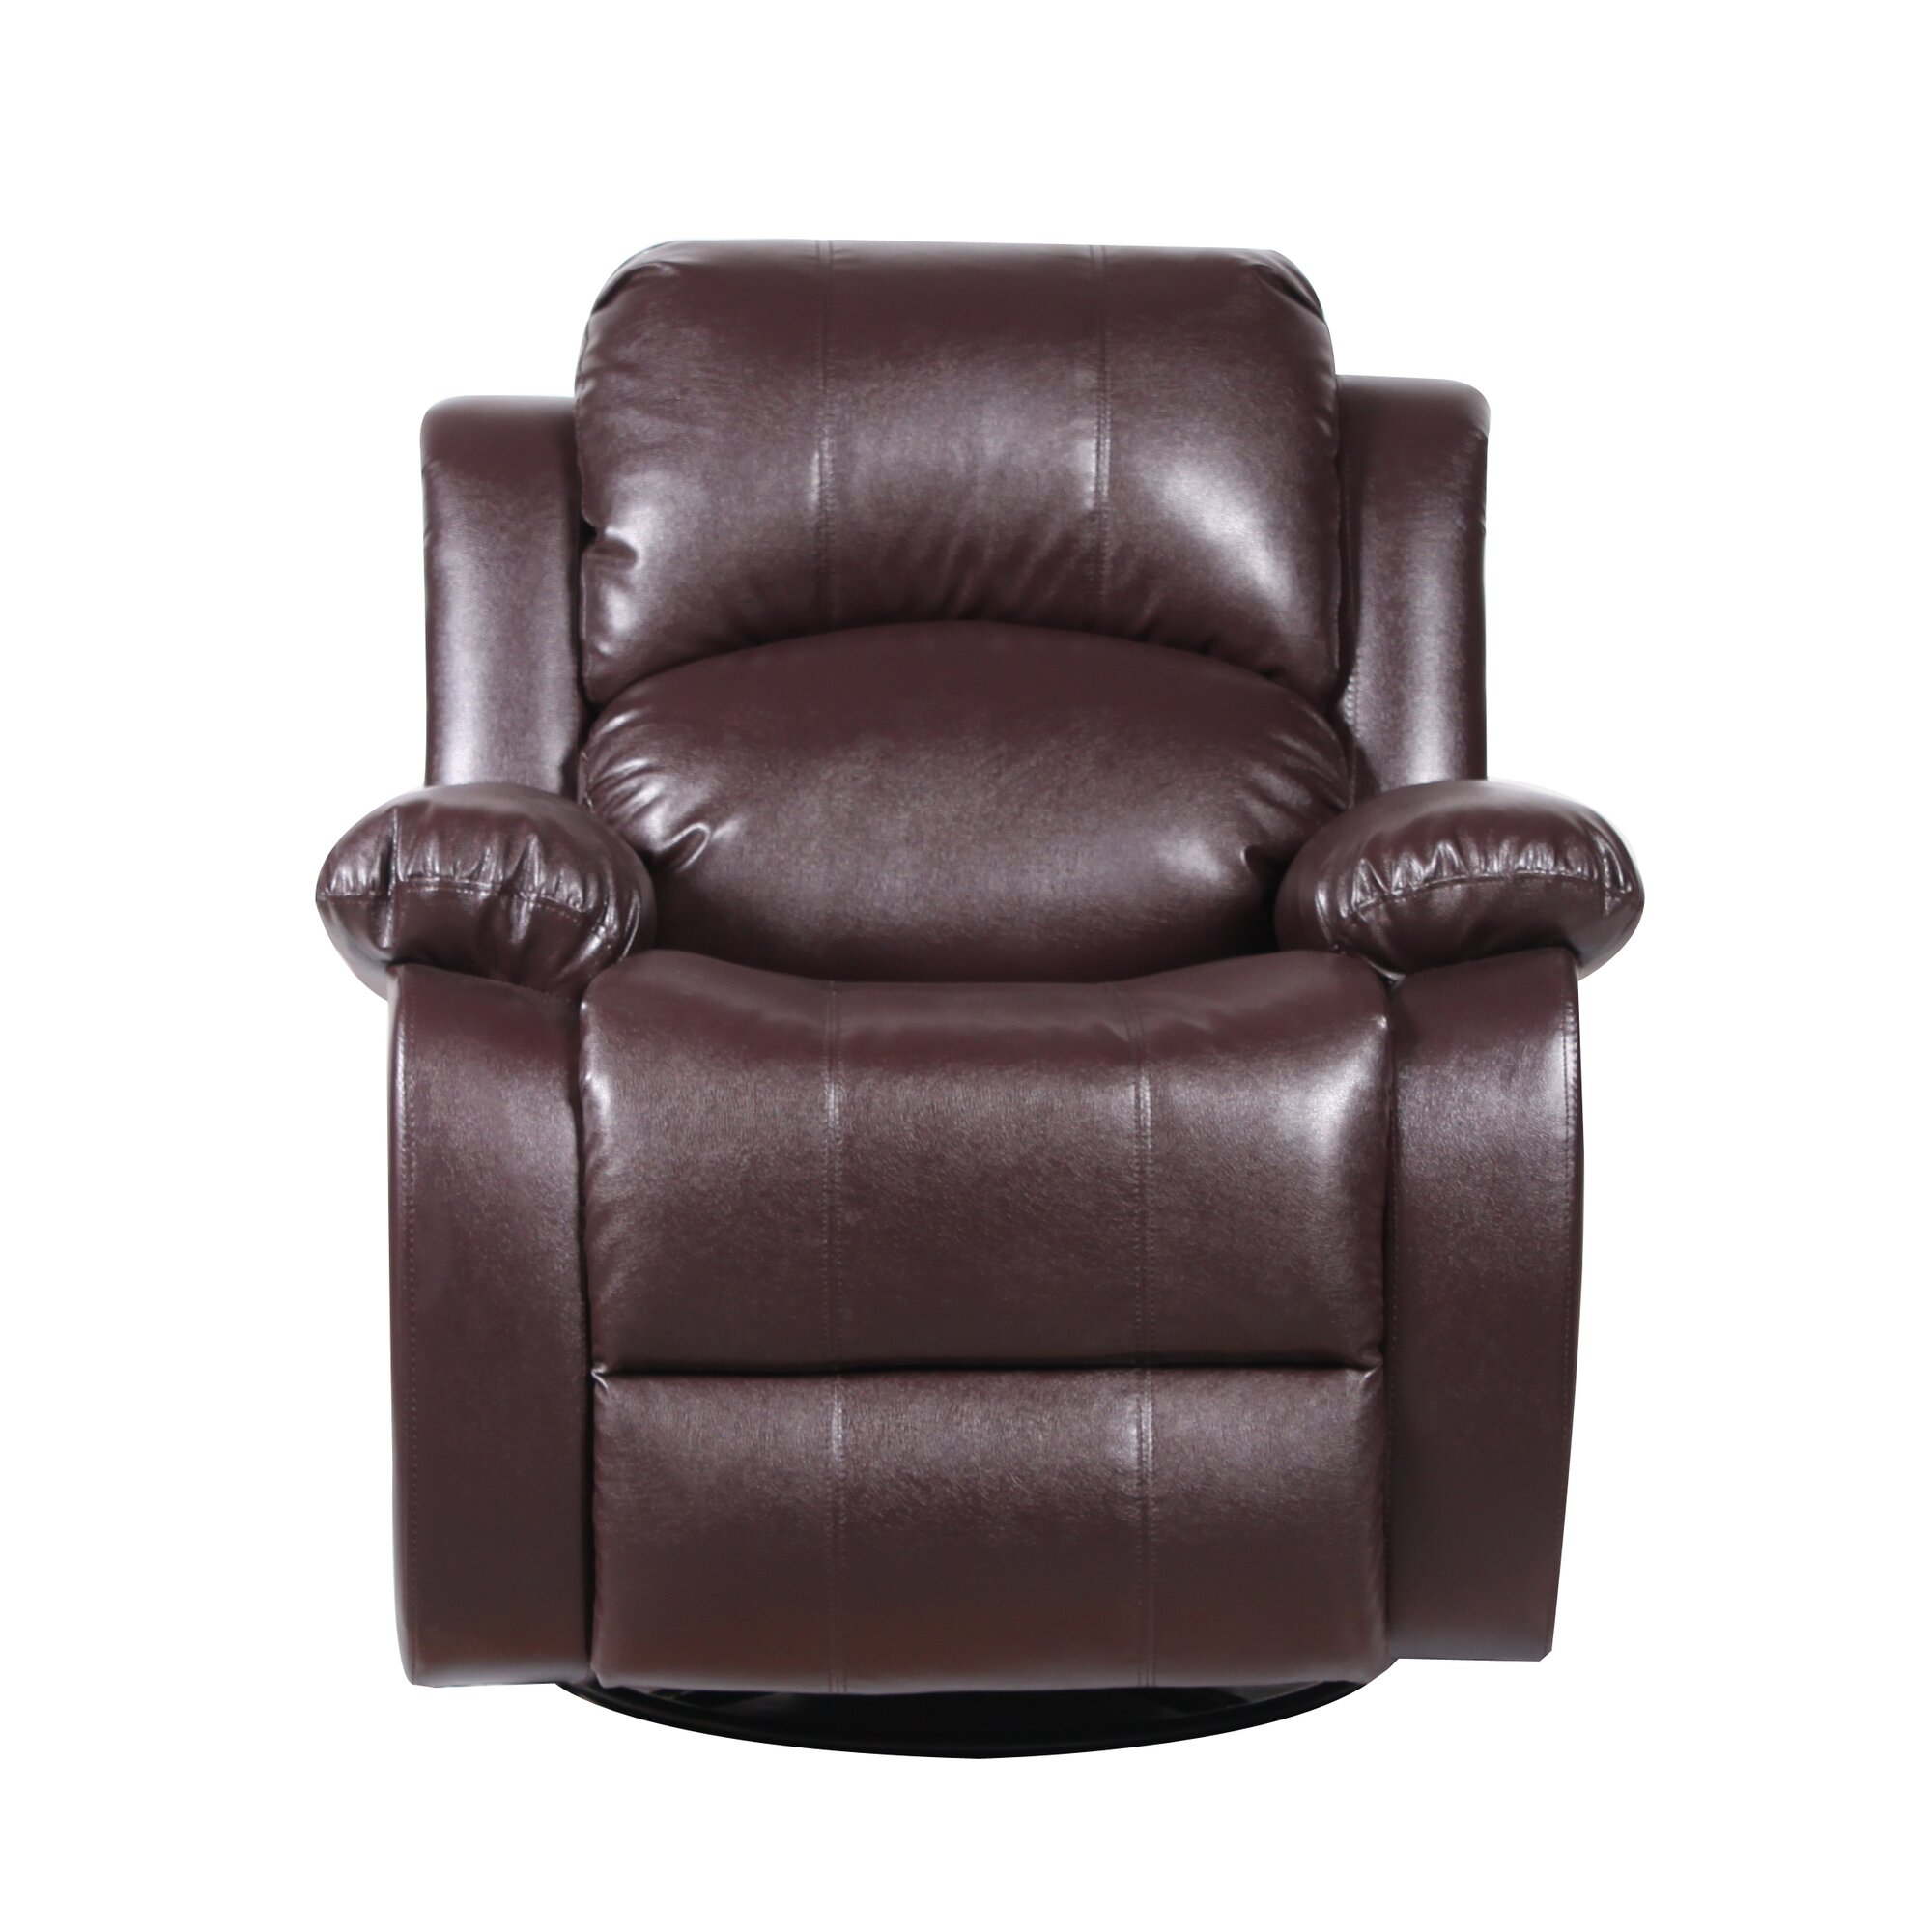 Chair and a half recliner ashley furniture - Rocker And Swivel Recliner